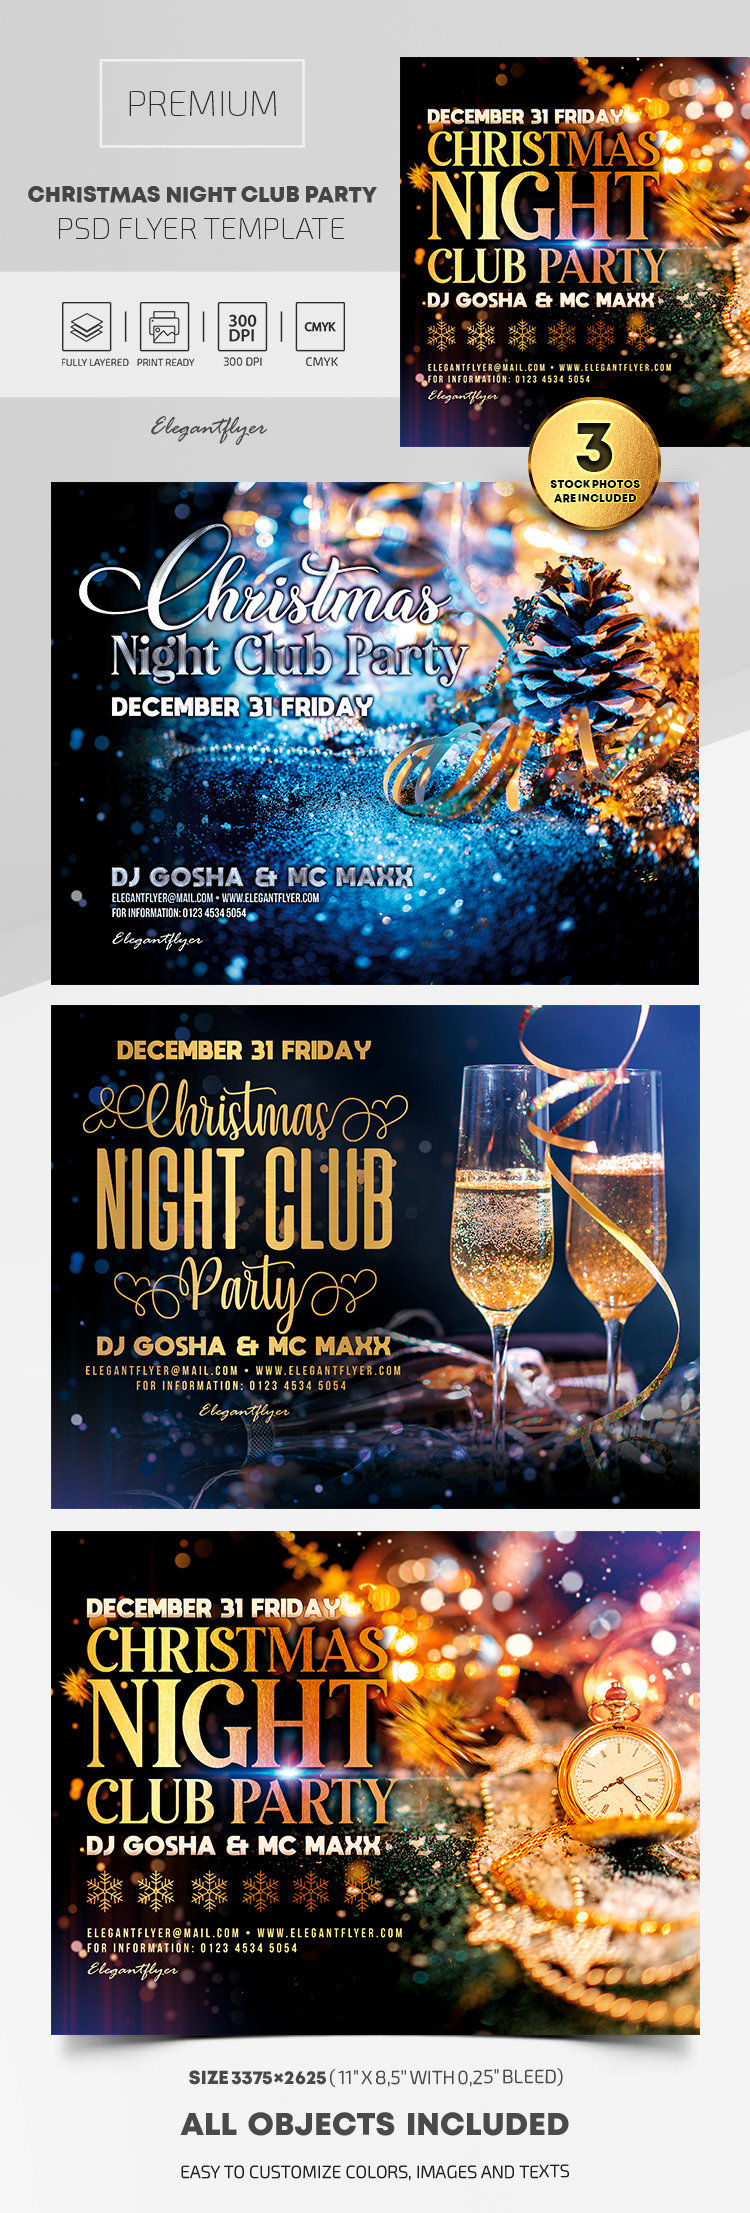 Christmas Night Club Party – Premium PSD Flyer Template